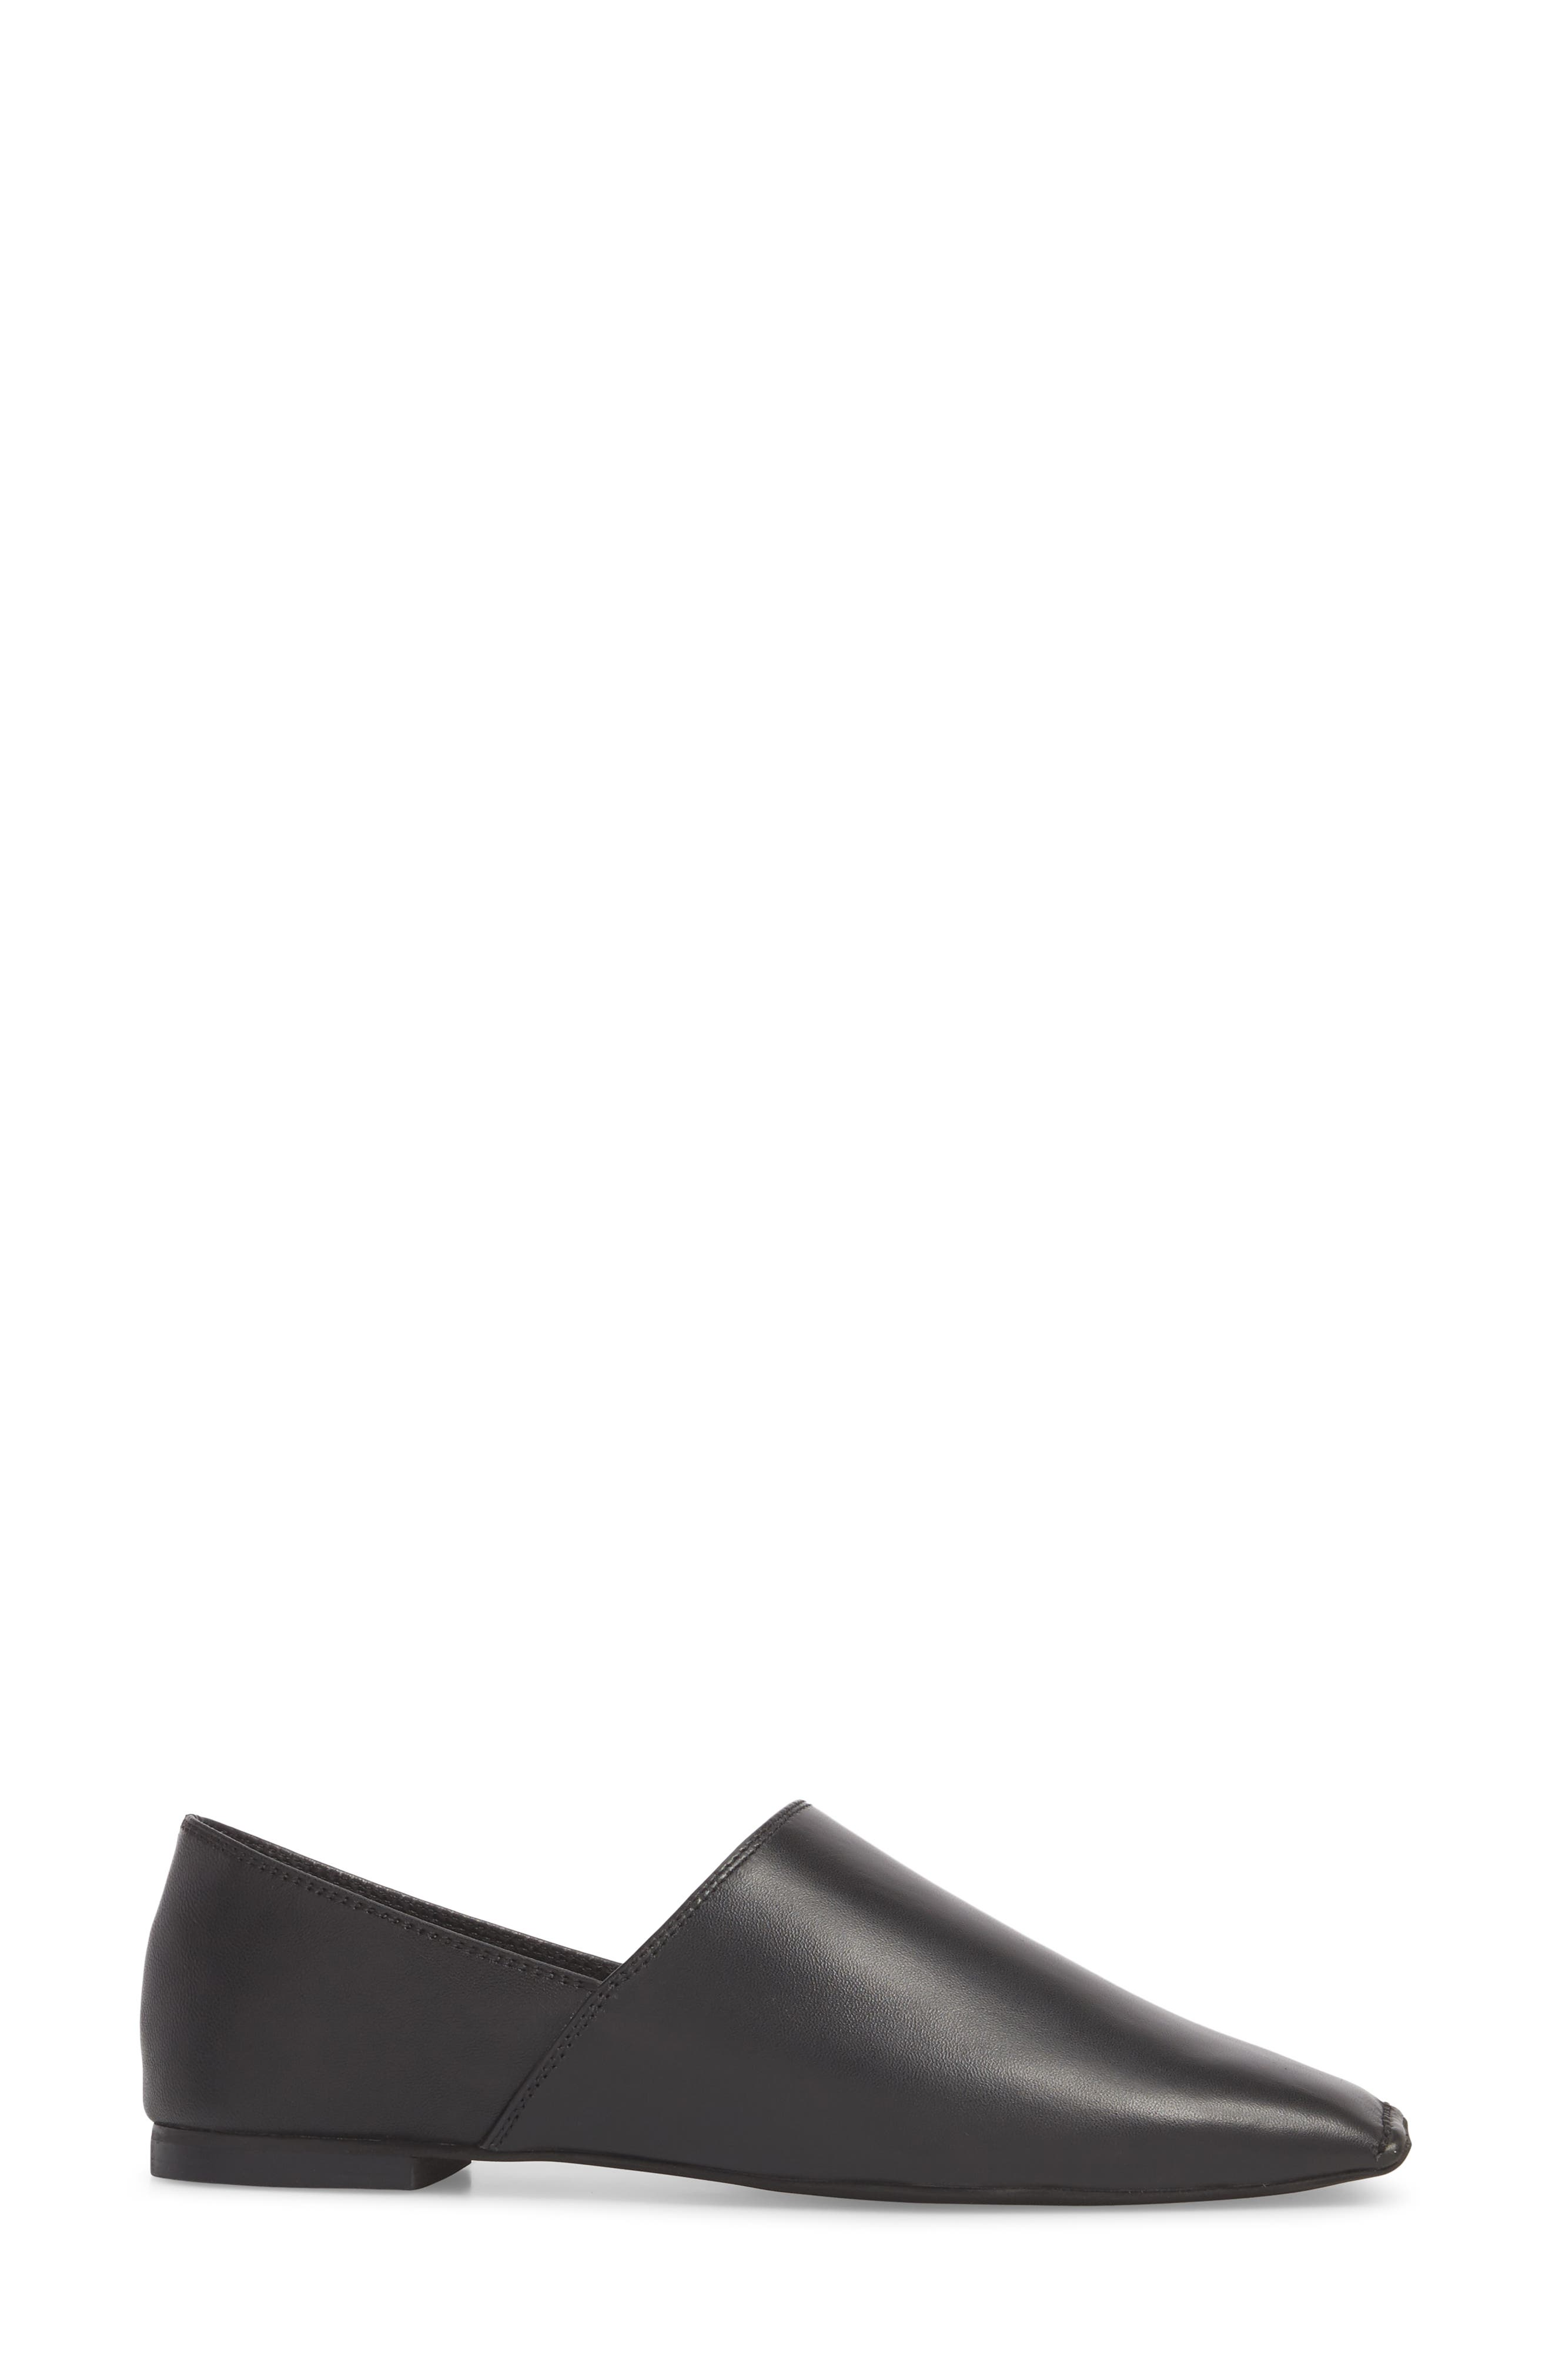 JEFFREY CAMPBELL,                             Lanvale Blunted Toe Flat,                             Alternate thumbnail 3, color,                             001